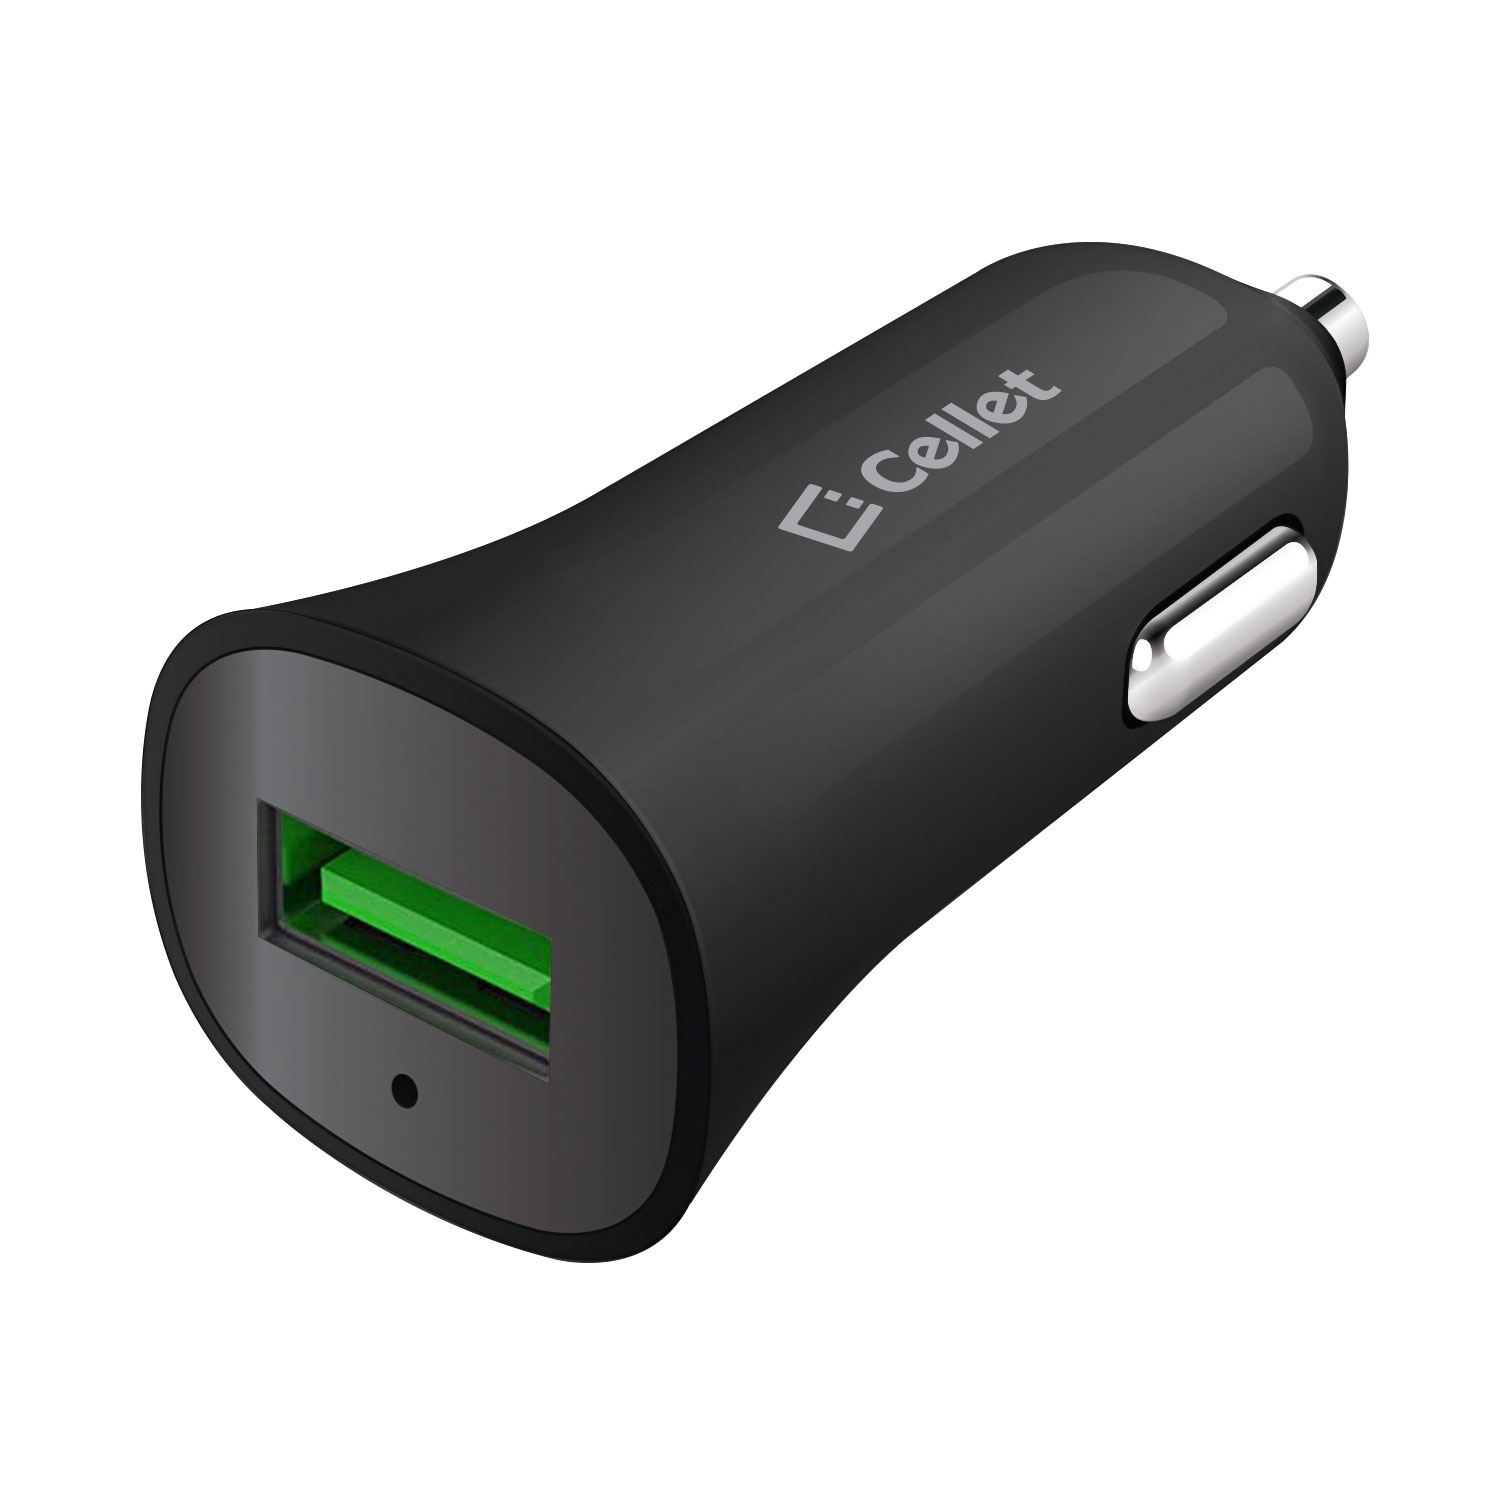 Samsung Galaxy S10 Plus Car Charger Quick Charge 3.0 Black 3.3ft